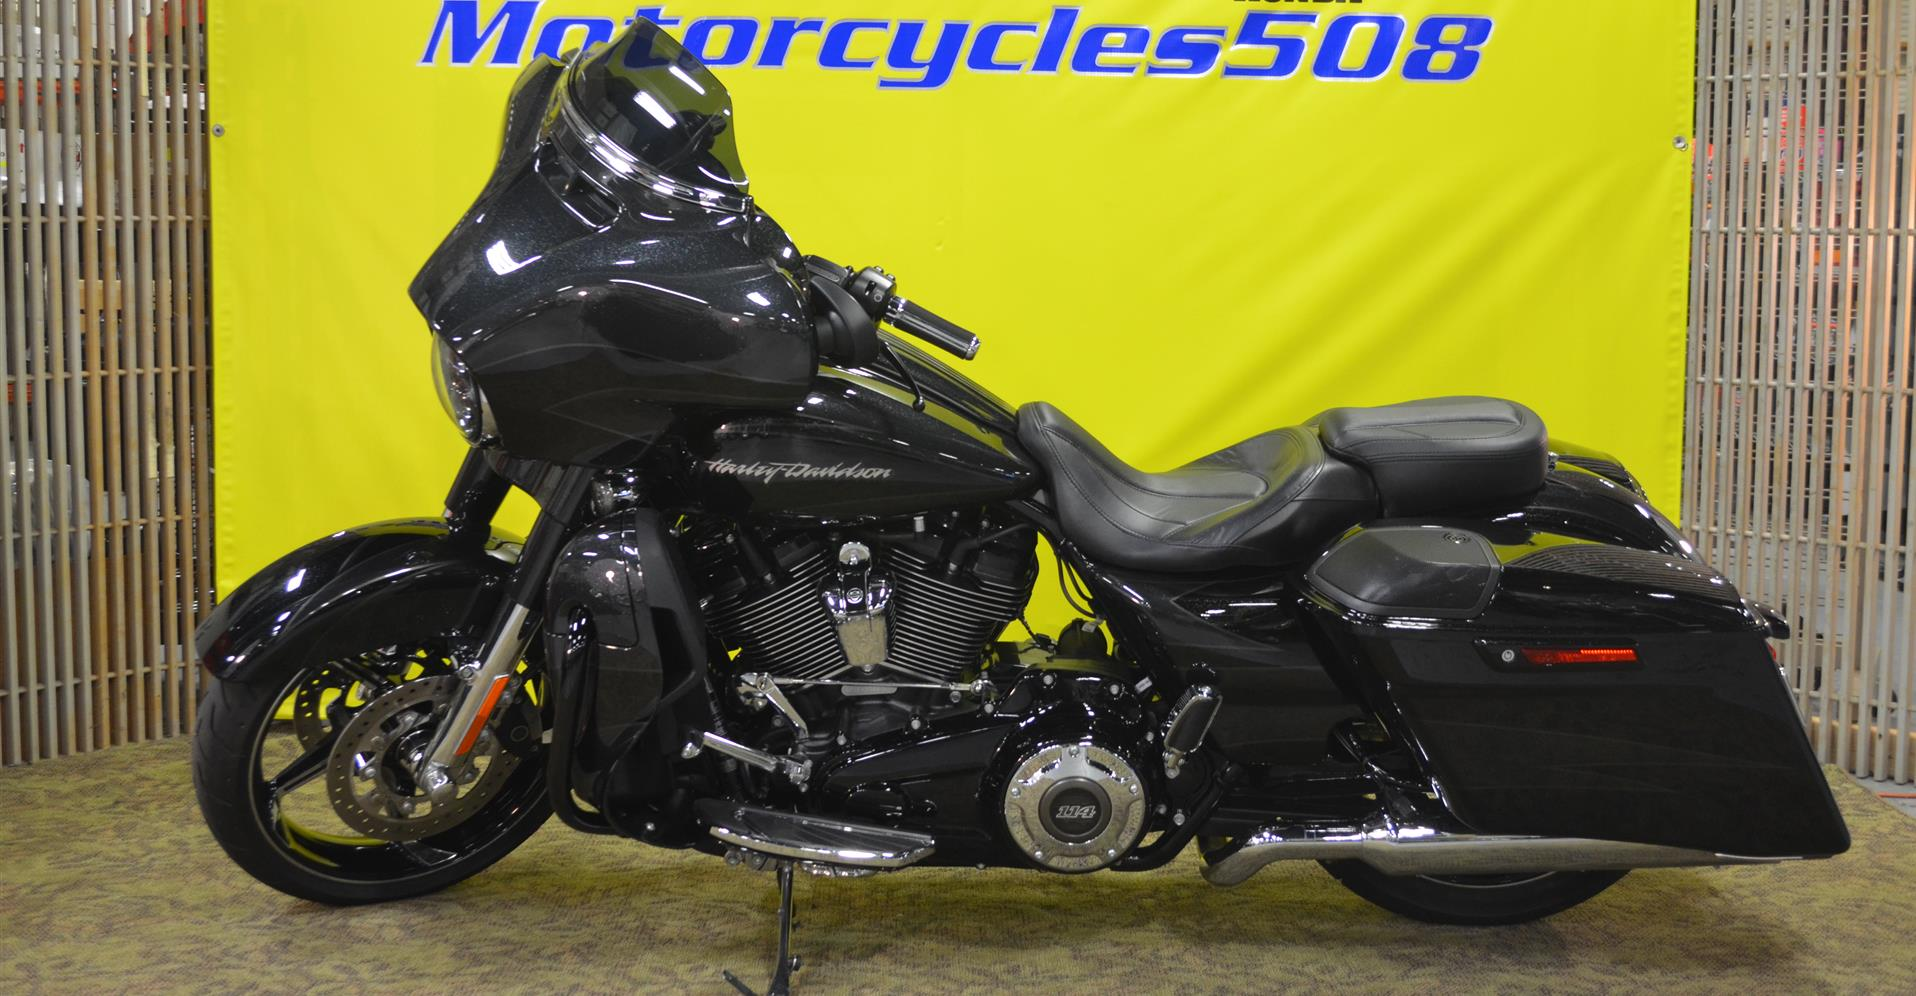 Used Motorcycles For sale Near Brockton, MA at MOTORCYCLES